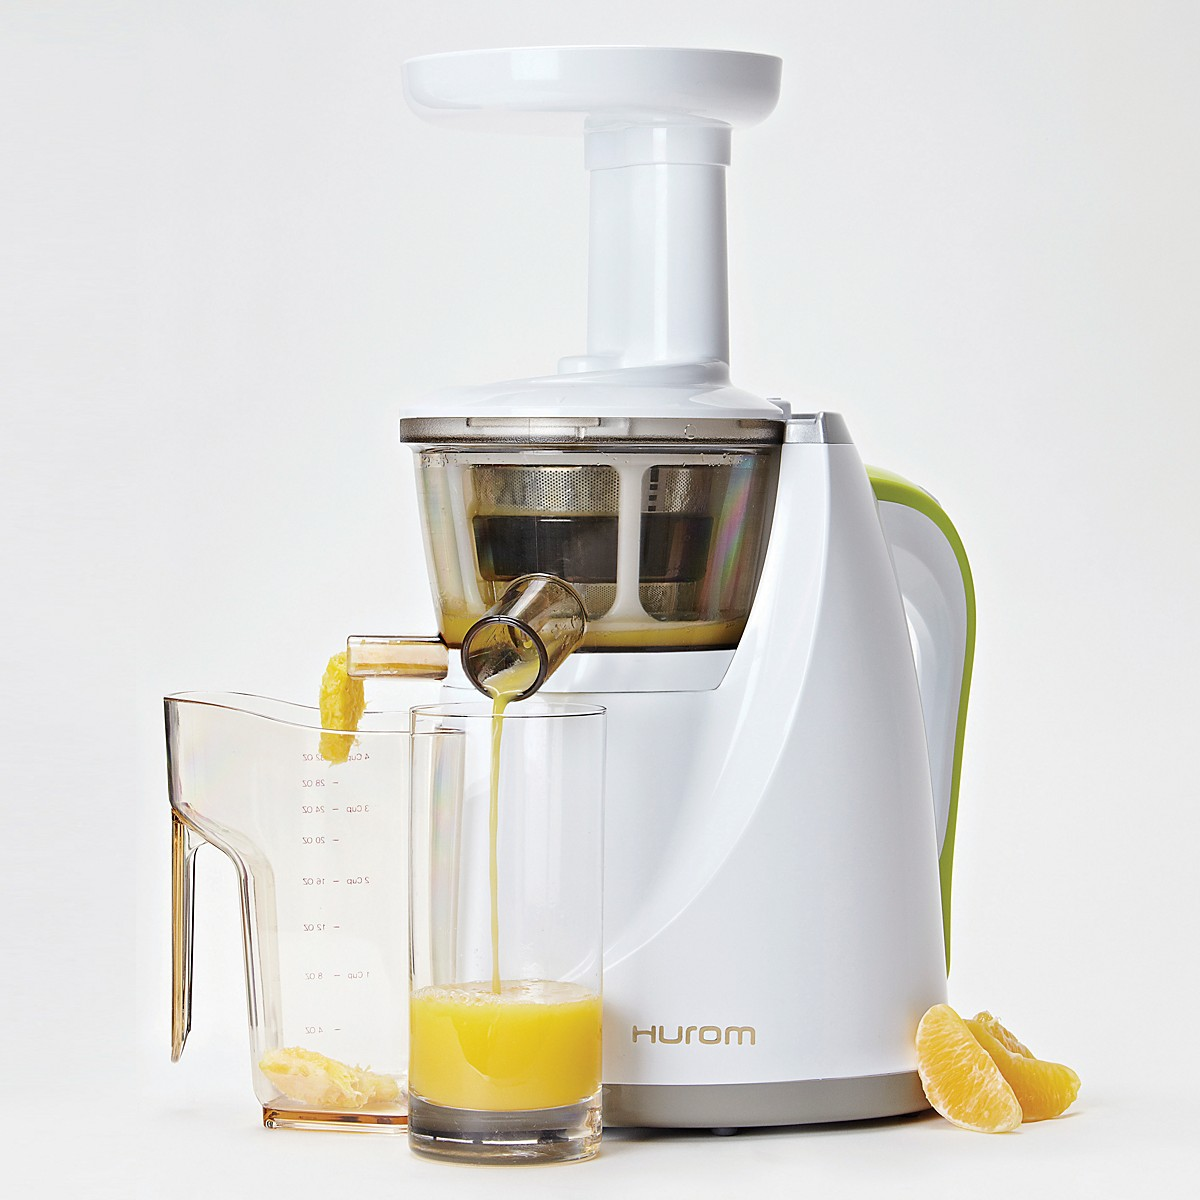 Slow Juicer Test Hurom : The Wish List 2014 Our favourite kitchen appliances for chefs and avid home cooks